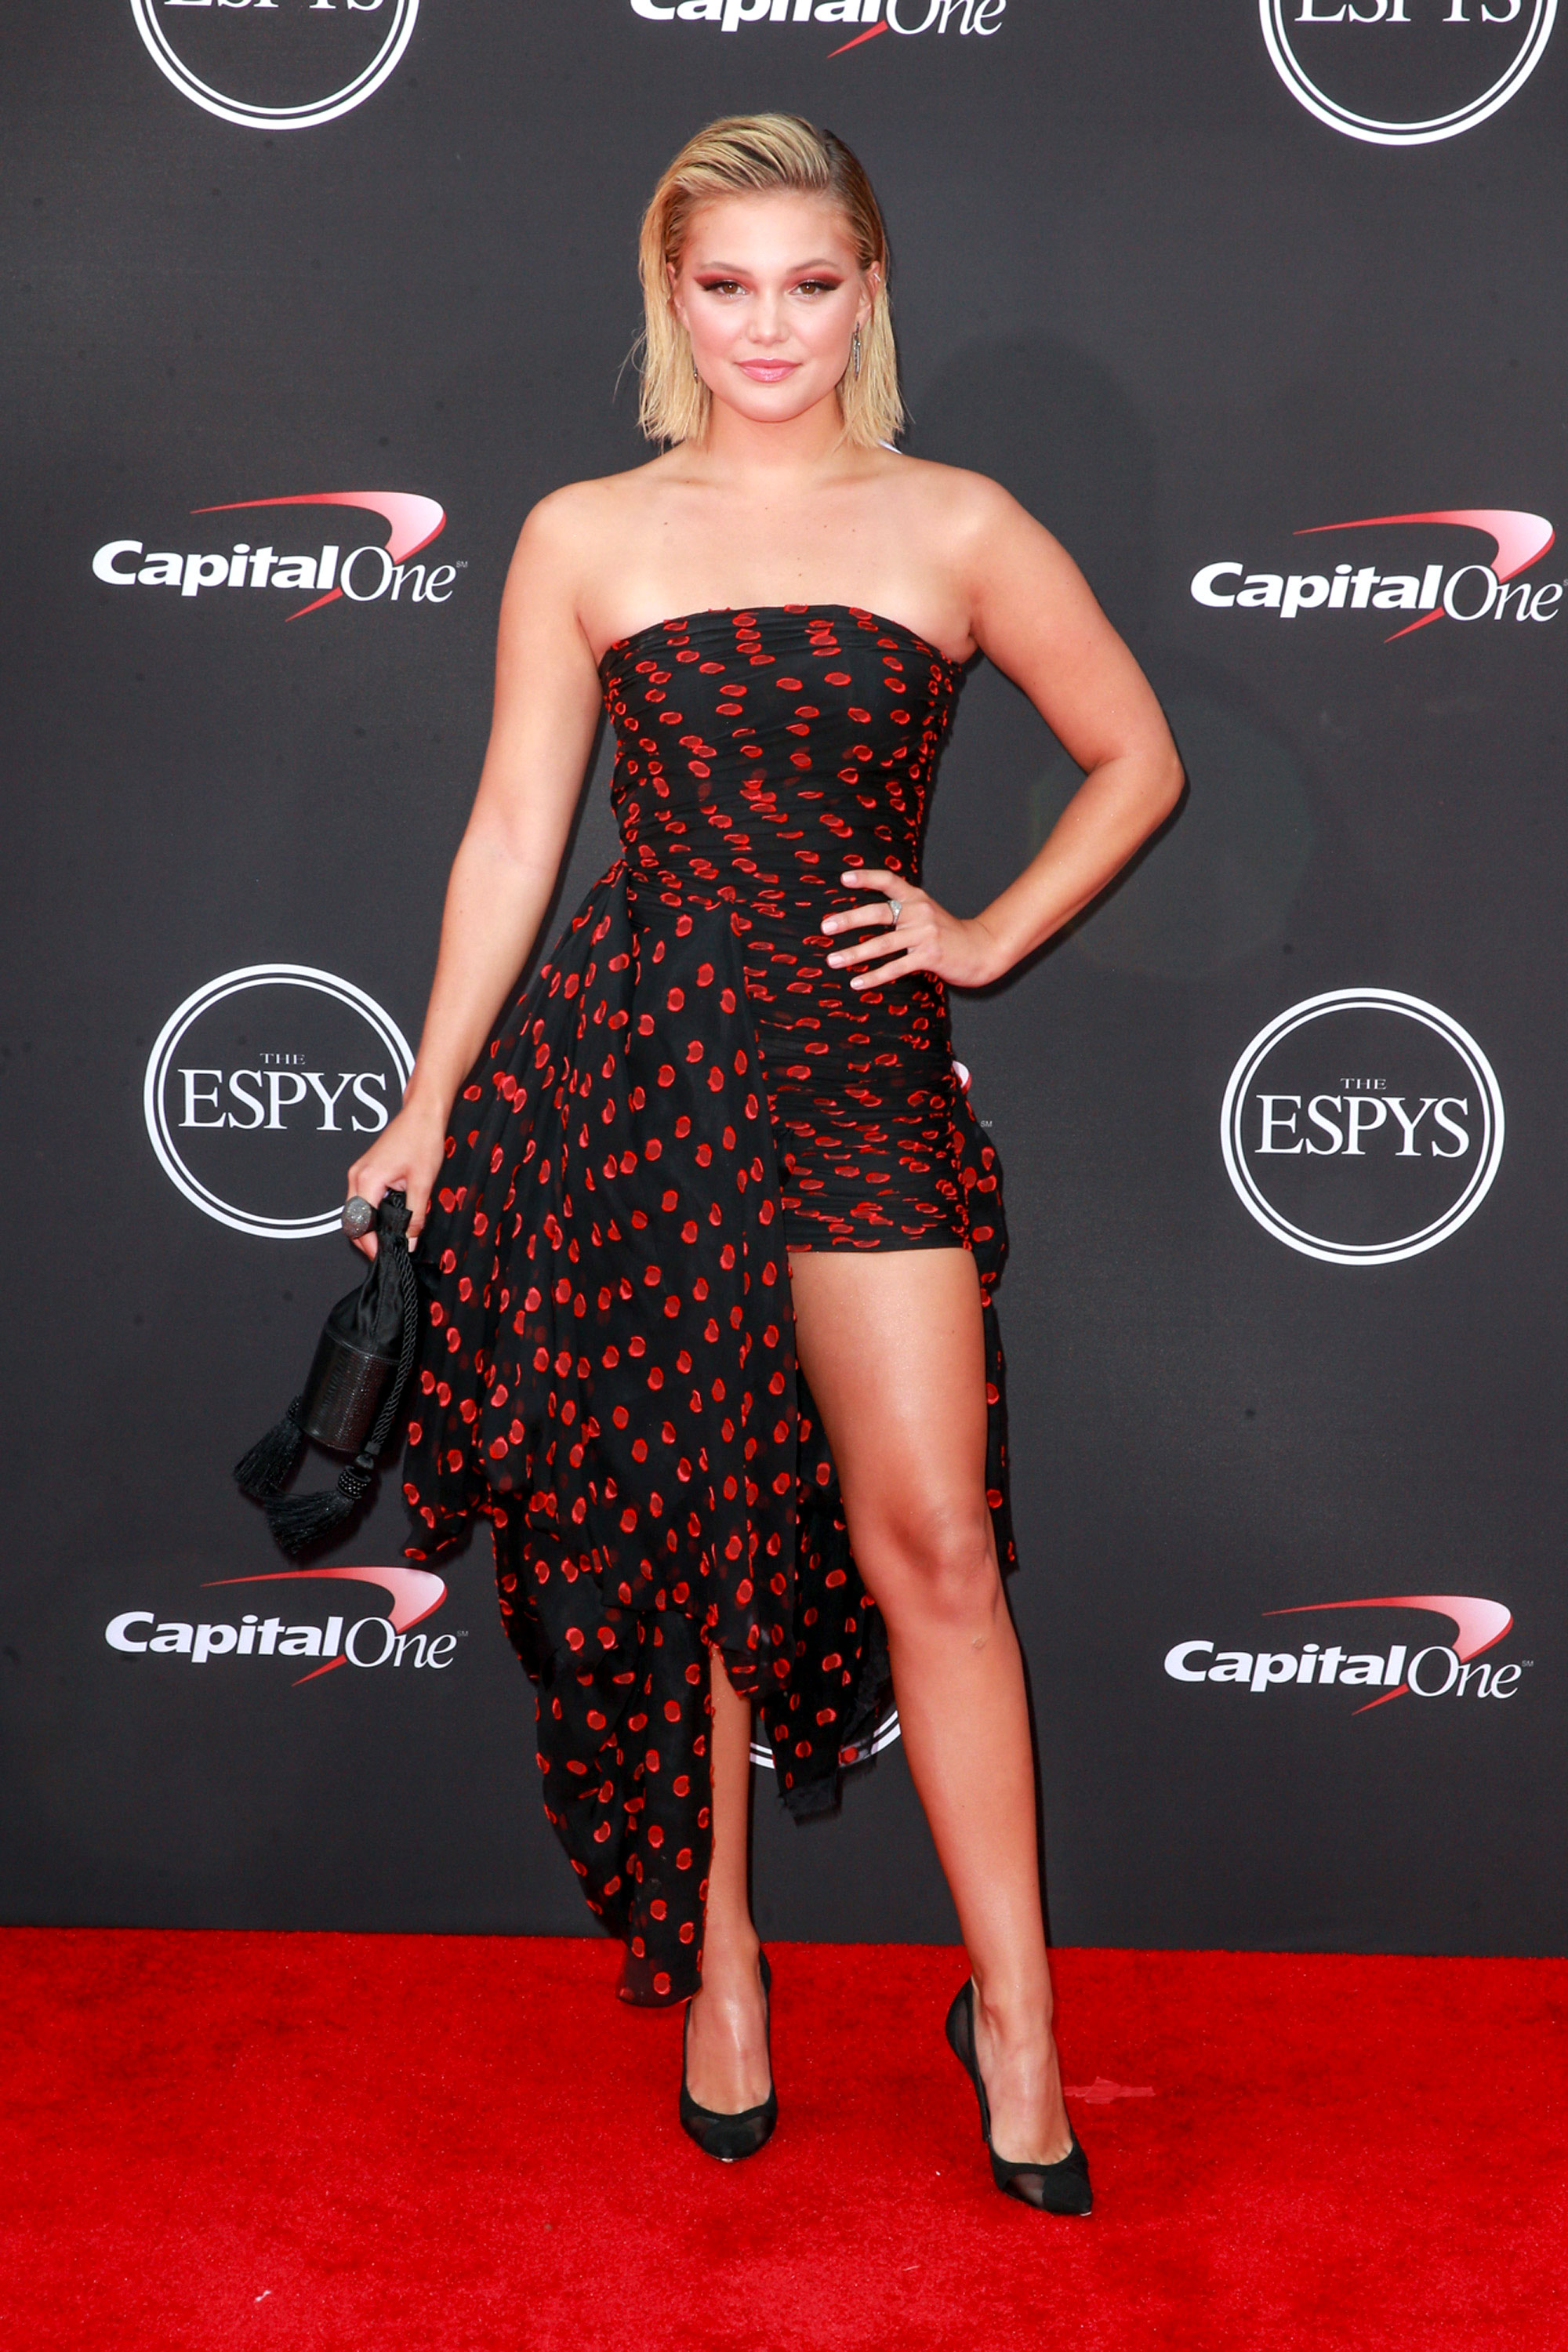 Olivia-Holt-espys - Wearing a black and red printed Redemption mini with black pumps.